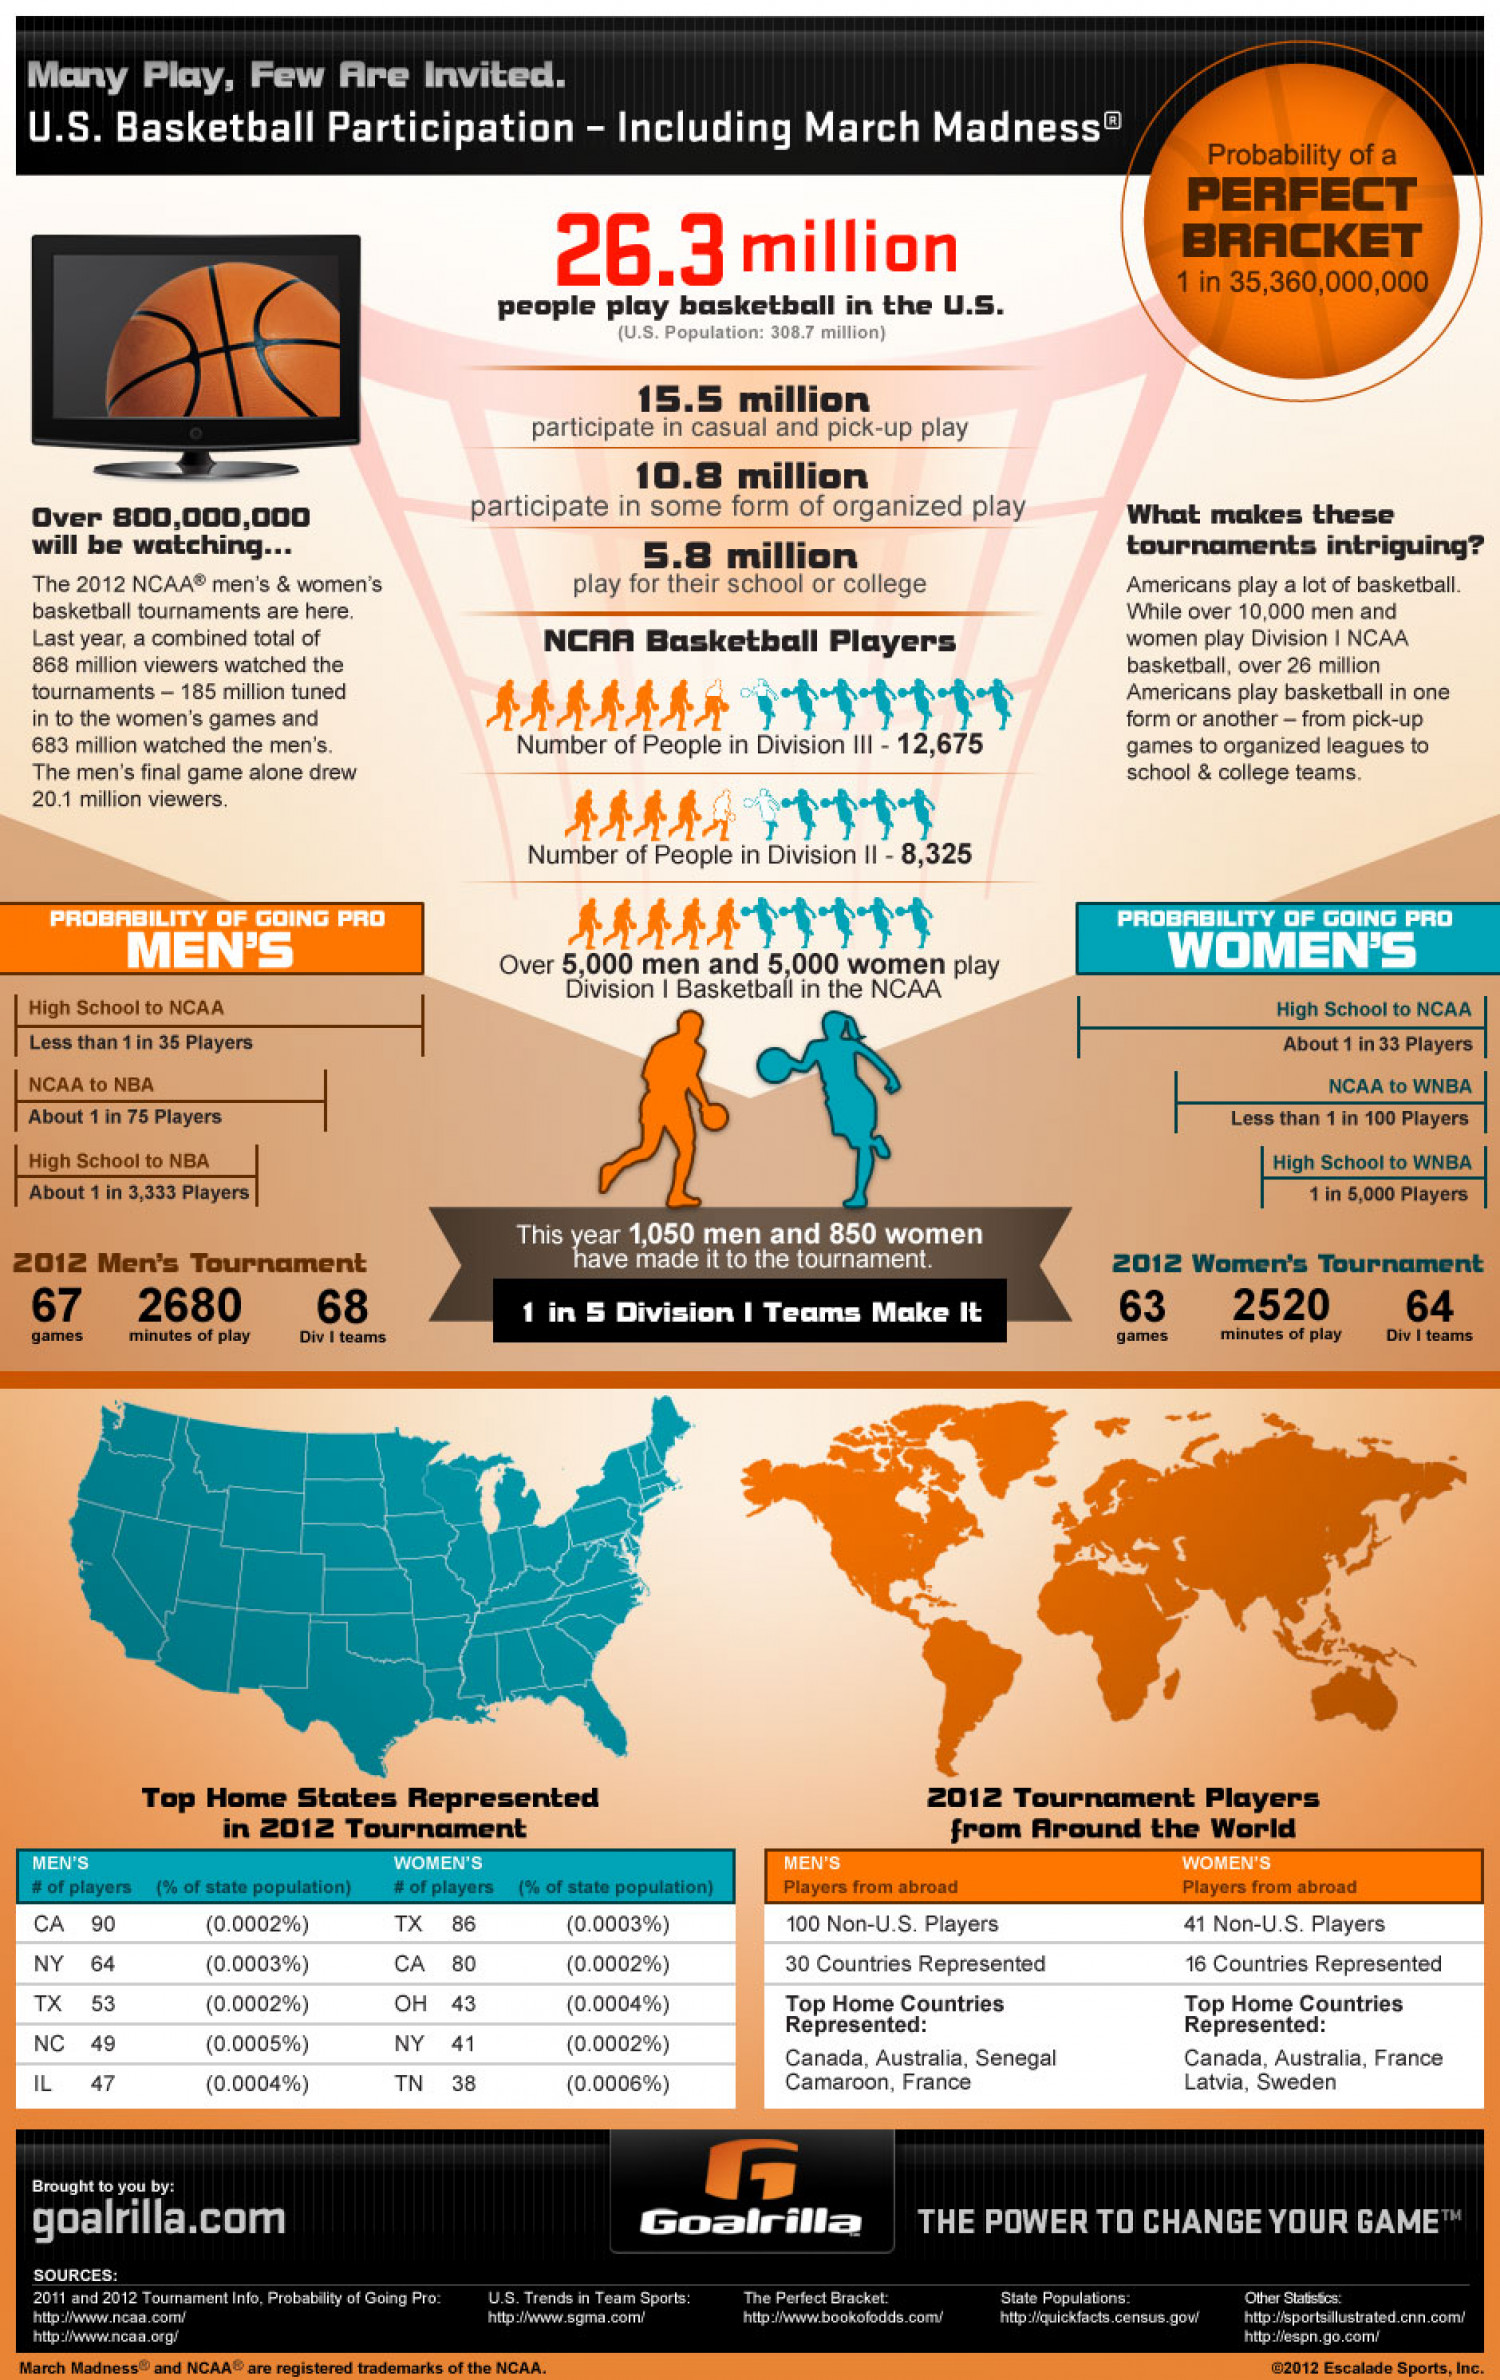 Many Play, Few Are Invited. U.S. Basketball Participation - including March Madness® Infographic